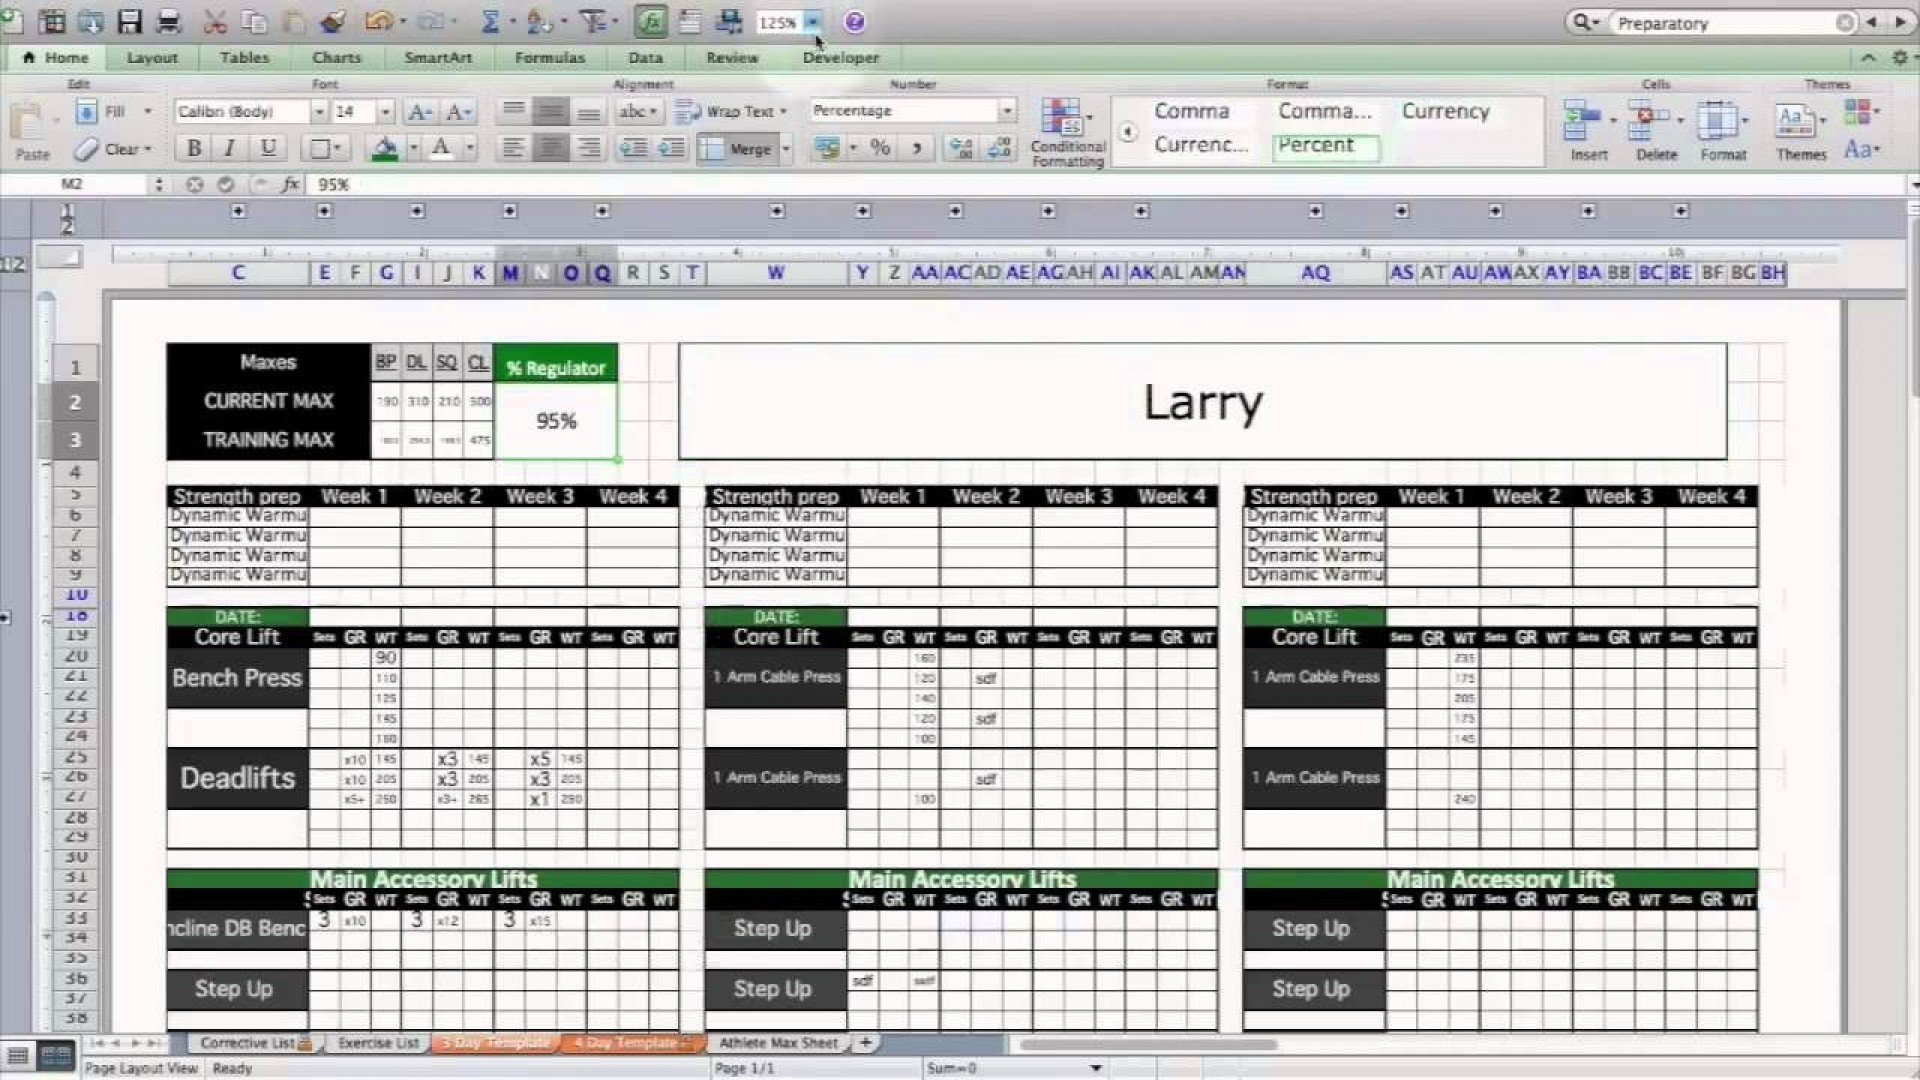 004 Awesome Workout Schedule Template Excel Inspiration  Training Plan Download Weekly Planner1920